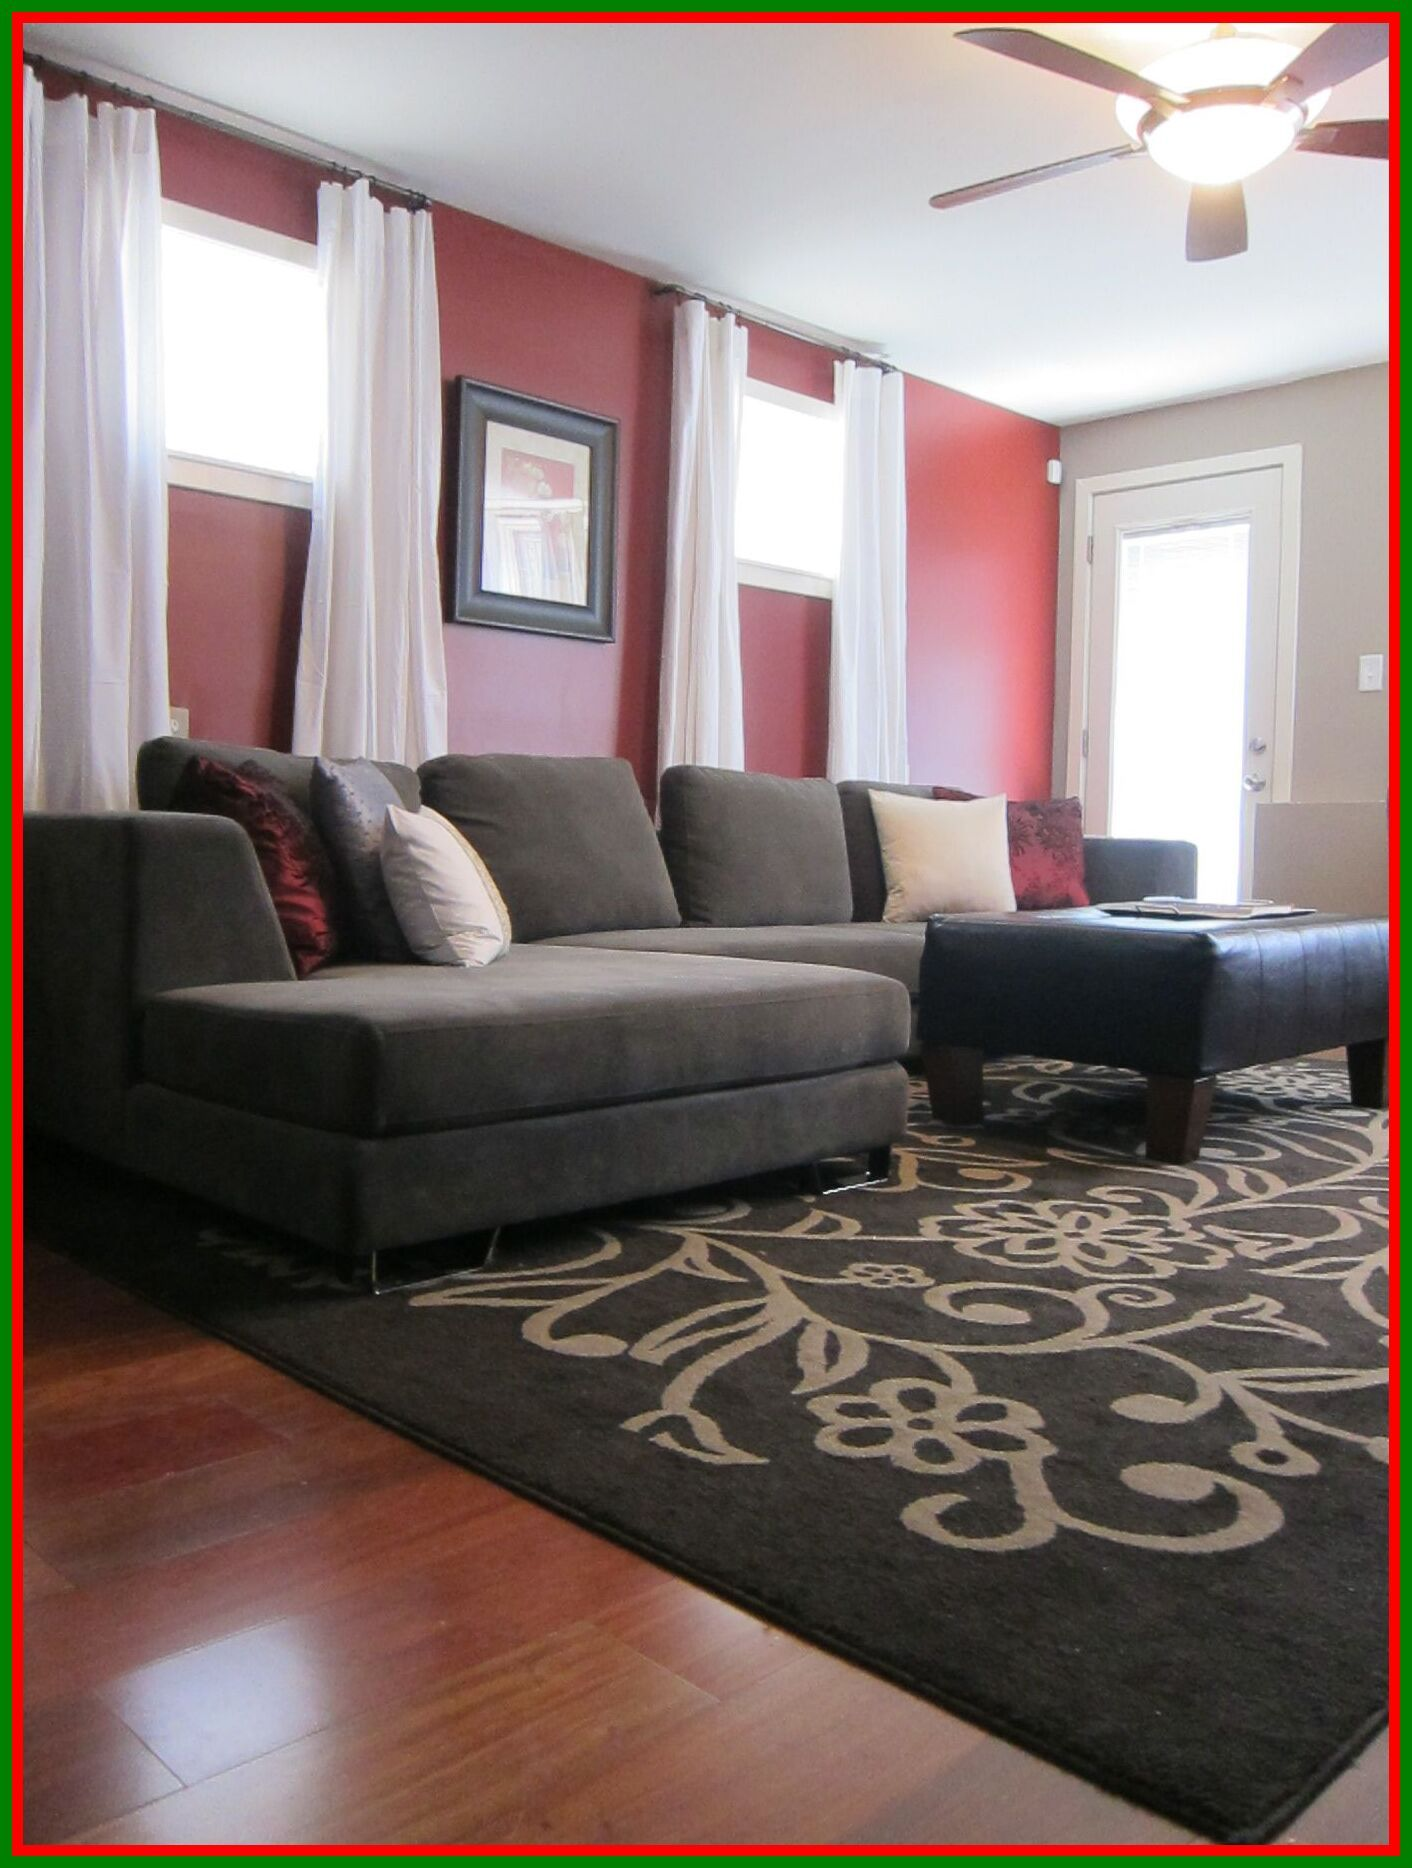 108 Reference Of Living Room Decor With Red Accent Wall In